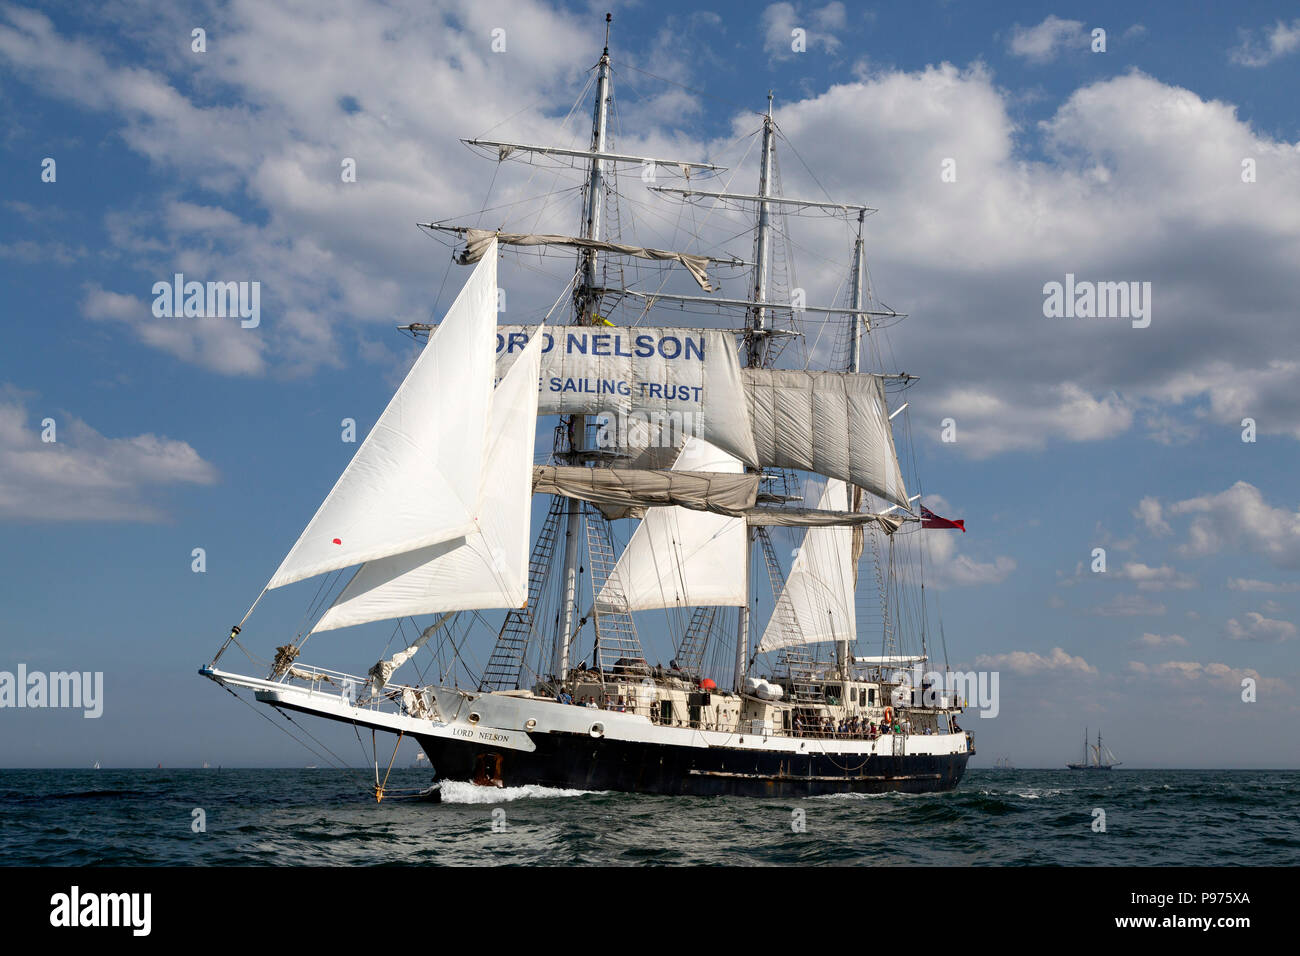 Sunderland, UK. 14th July 2018. The Lord Nelson, a British ship, on the North Sea at the beginning of the first leg of the 2018 Tall Ships Race, to Ebsjerg in Denmark. More than 50 tall ships were docked in the Port of Sunderland, in north-east England, from 11 to 14 July 2018. Credit: Stuart Forster/Alamy Live News - Stock Image